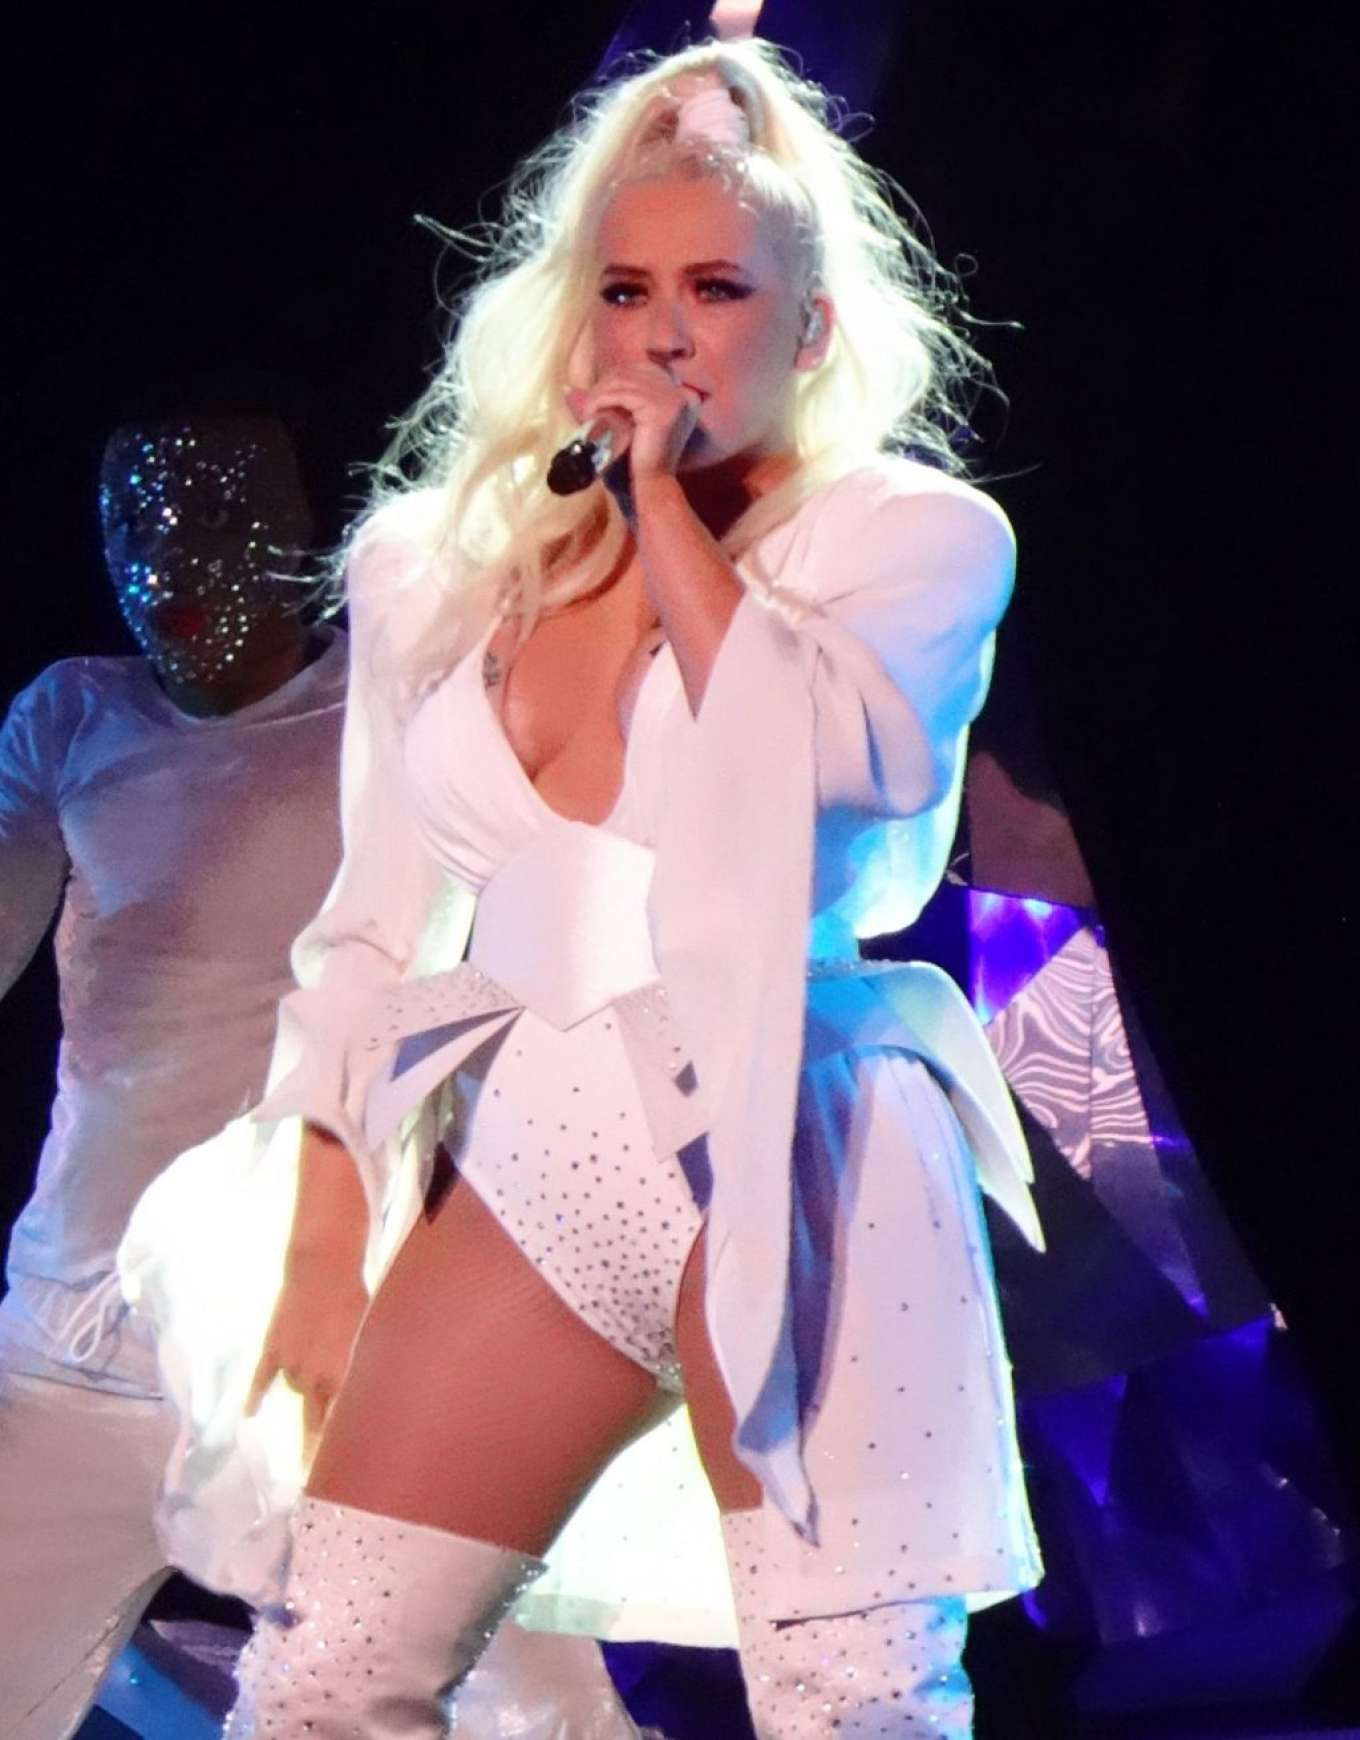 Christina Aguilera - New Year's Eve Performance at Zappos Theatre in Las Vegas